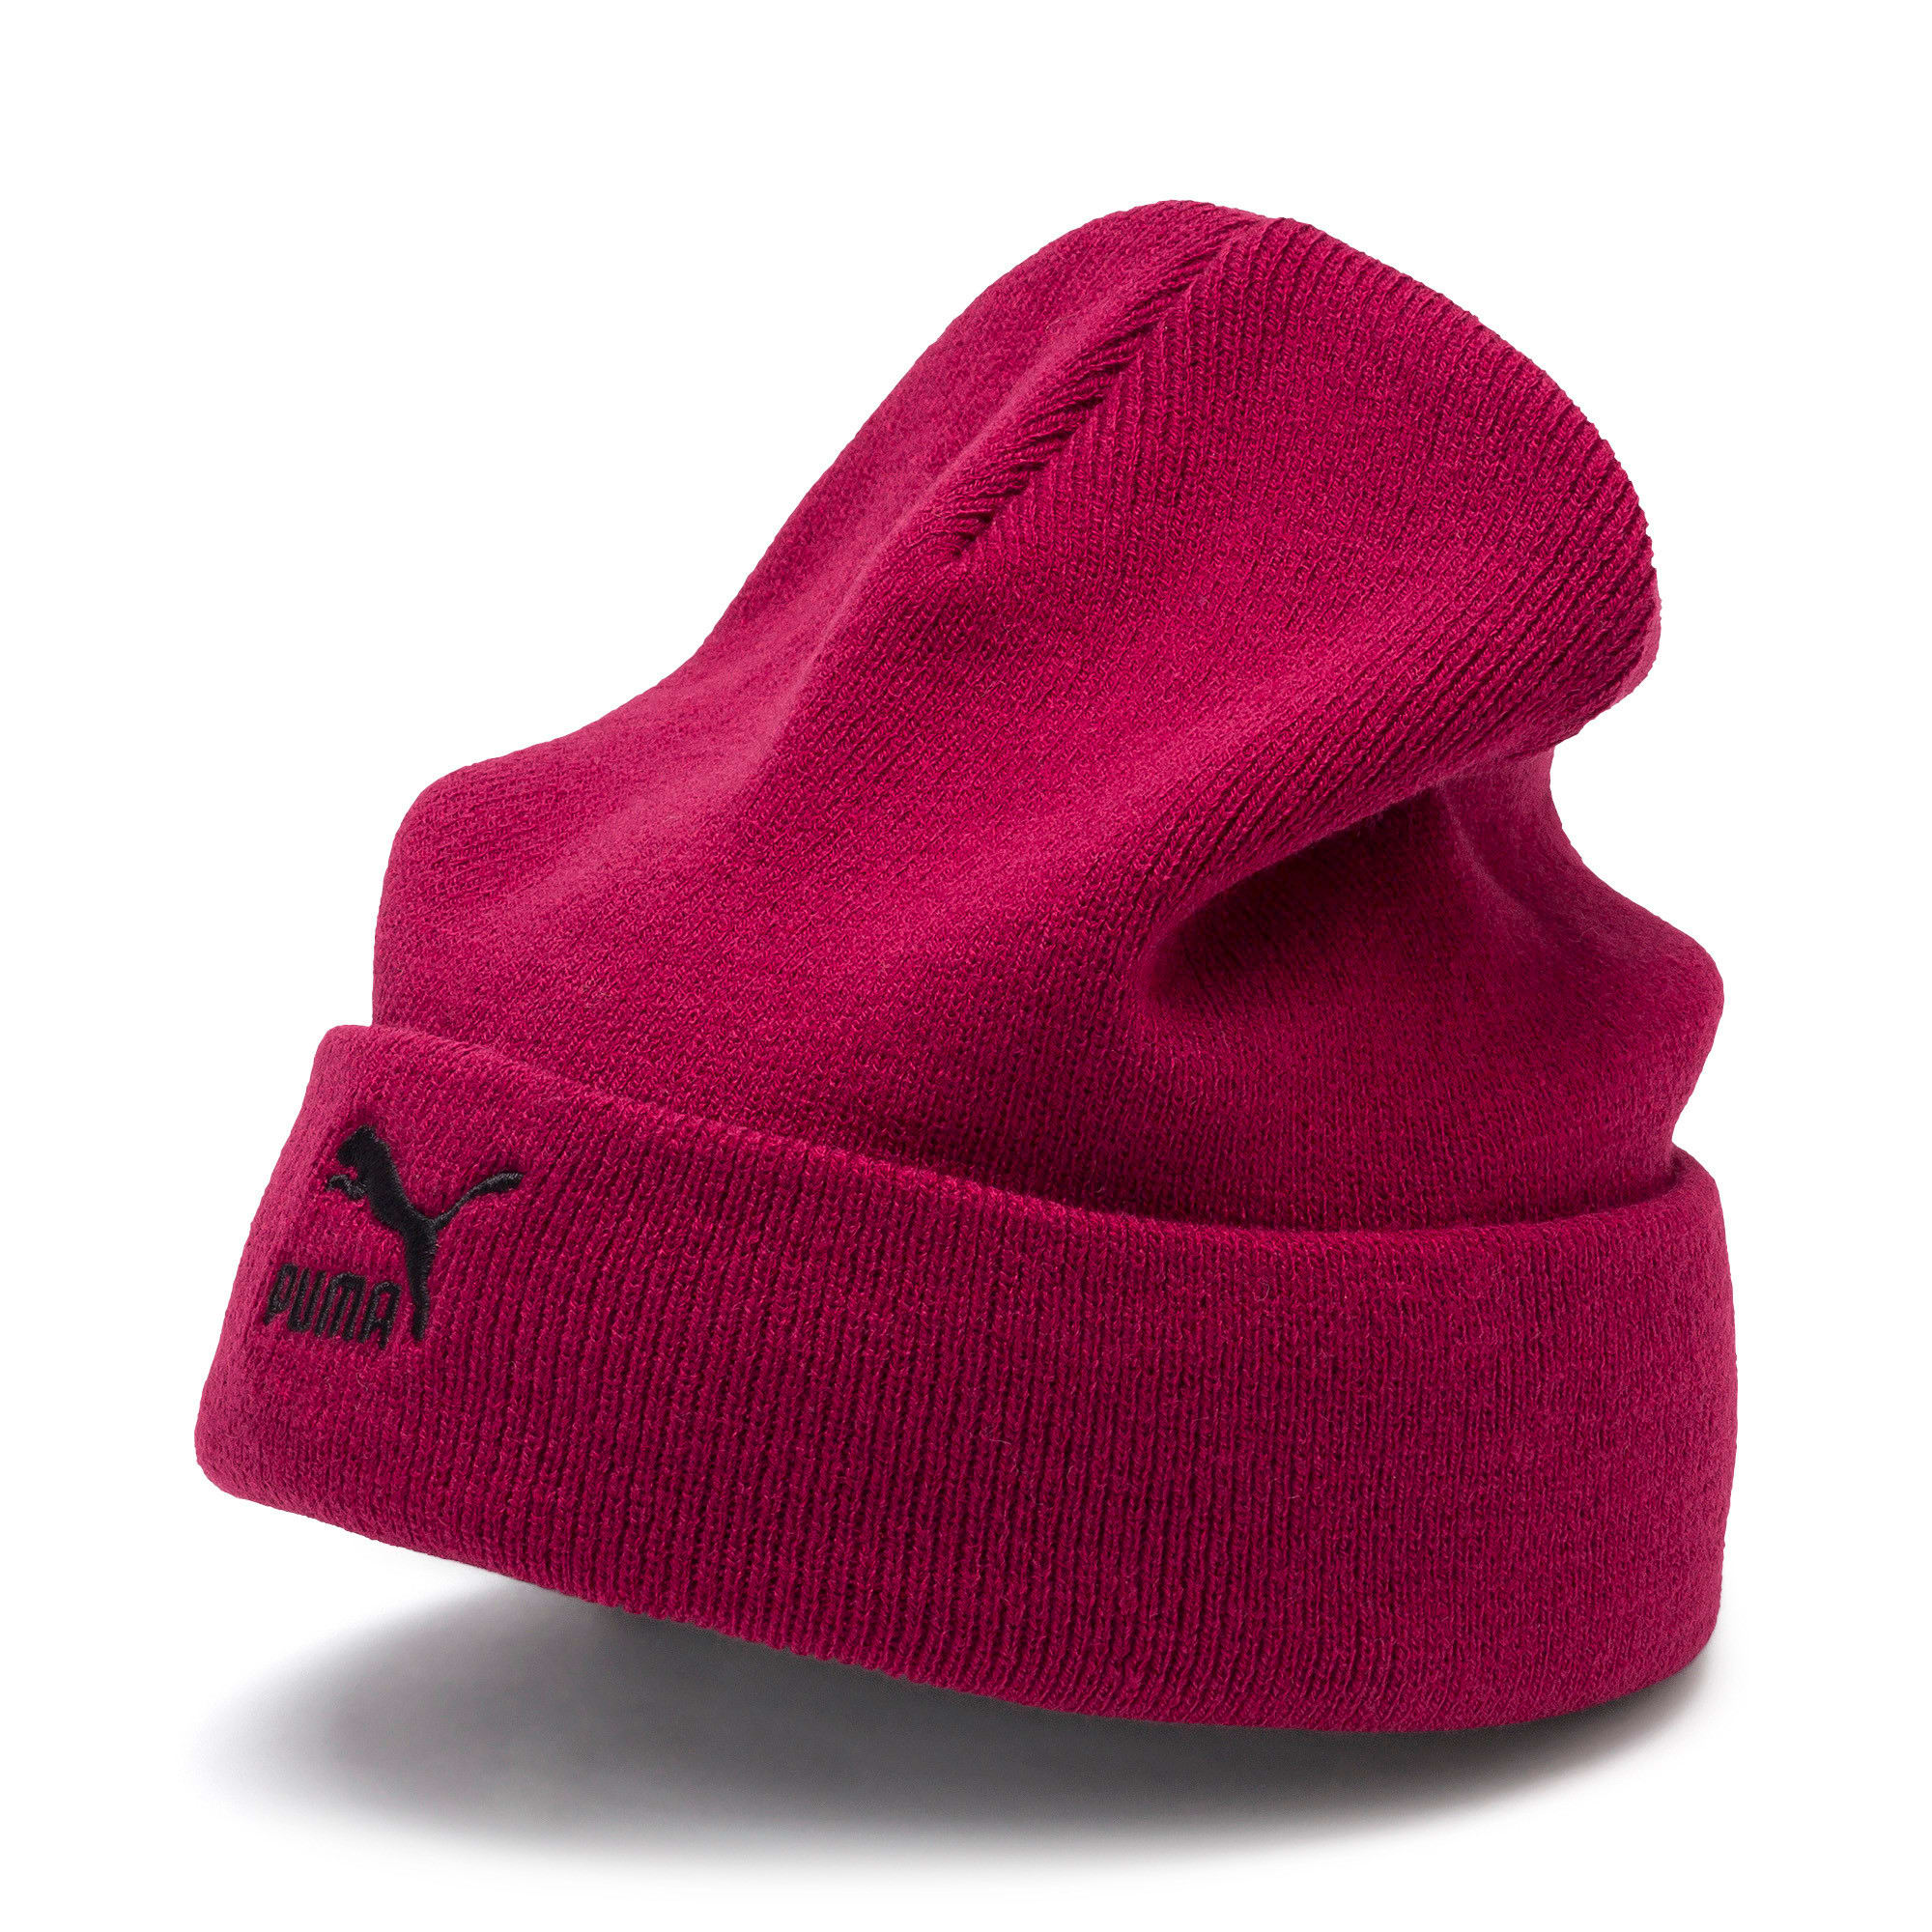 Thumbnail 1 of Archive Mid Fit Beanie, Rhubarb, medium